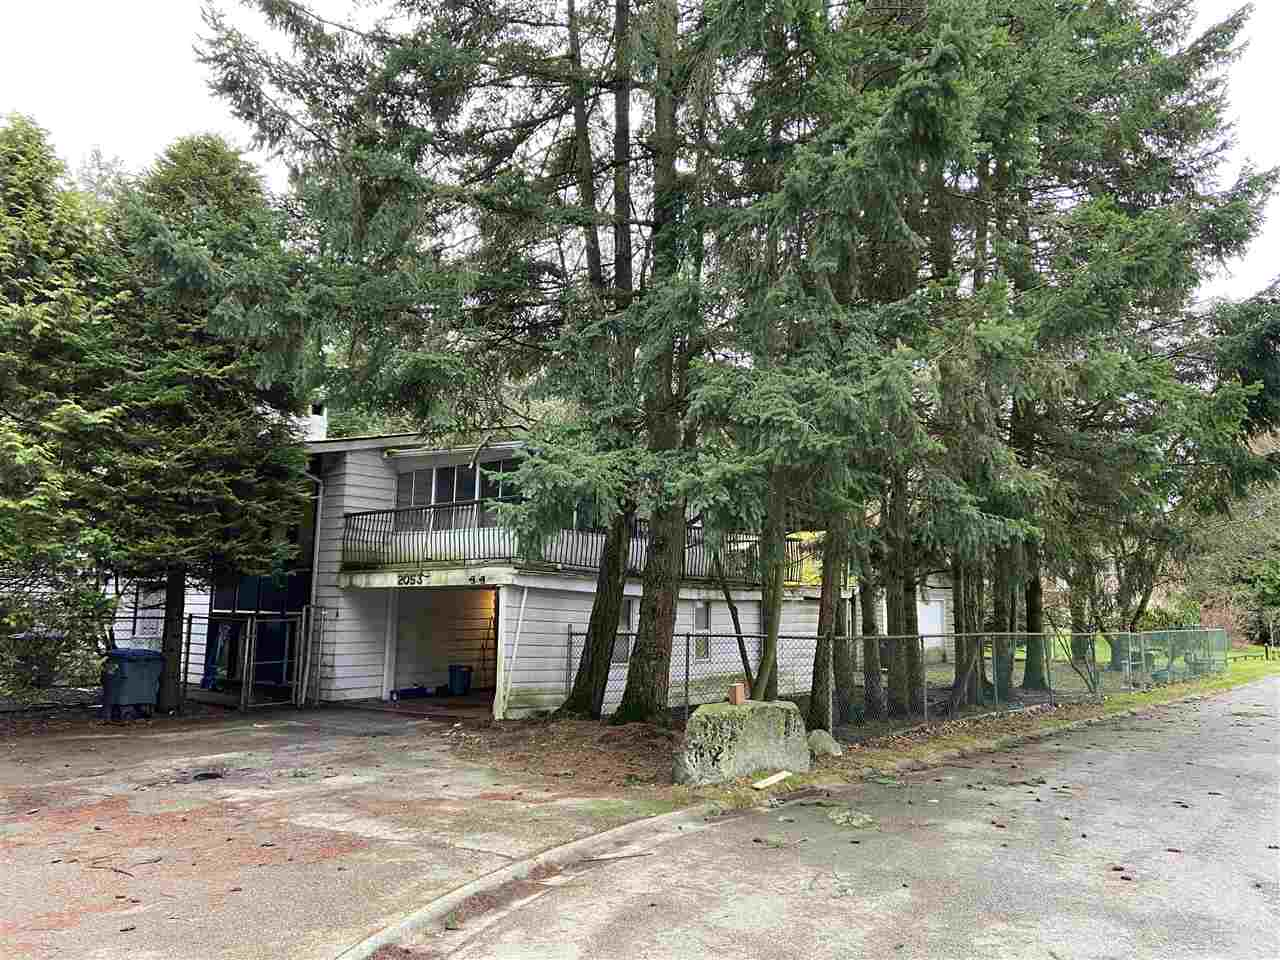 """Attention Builders, Investors & Developers! Massive corner lot measuring over 14,000 Square Feet backing onto a green space and located in highly desirable Elgin Chantrell. Zoned RH-G meaning one single family home which may contain a secondary suite. This lot is set back from 140th and accessible through the highly sought after Chantrell Park Estates area. Ray Shepherd Elementary & Elgin Secondary School Catchment. House """"sold as is where is"""" but this corner lot is ready for you to build your dream home and move into this great neighbourhood!"""